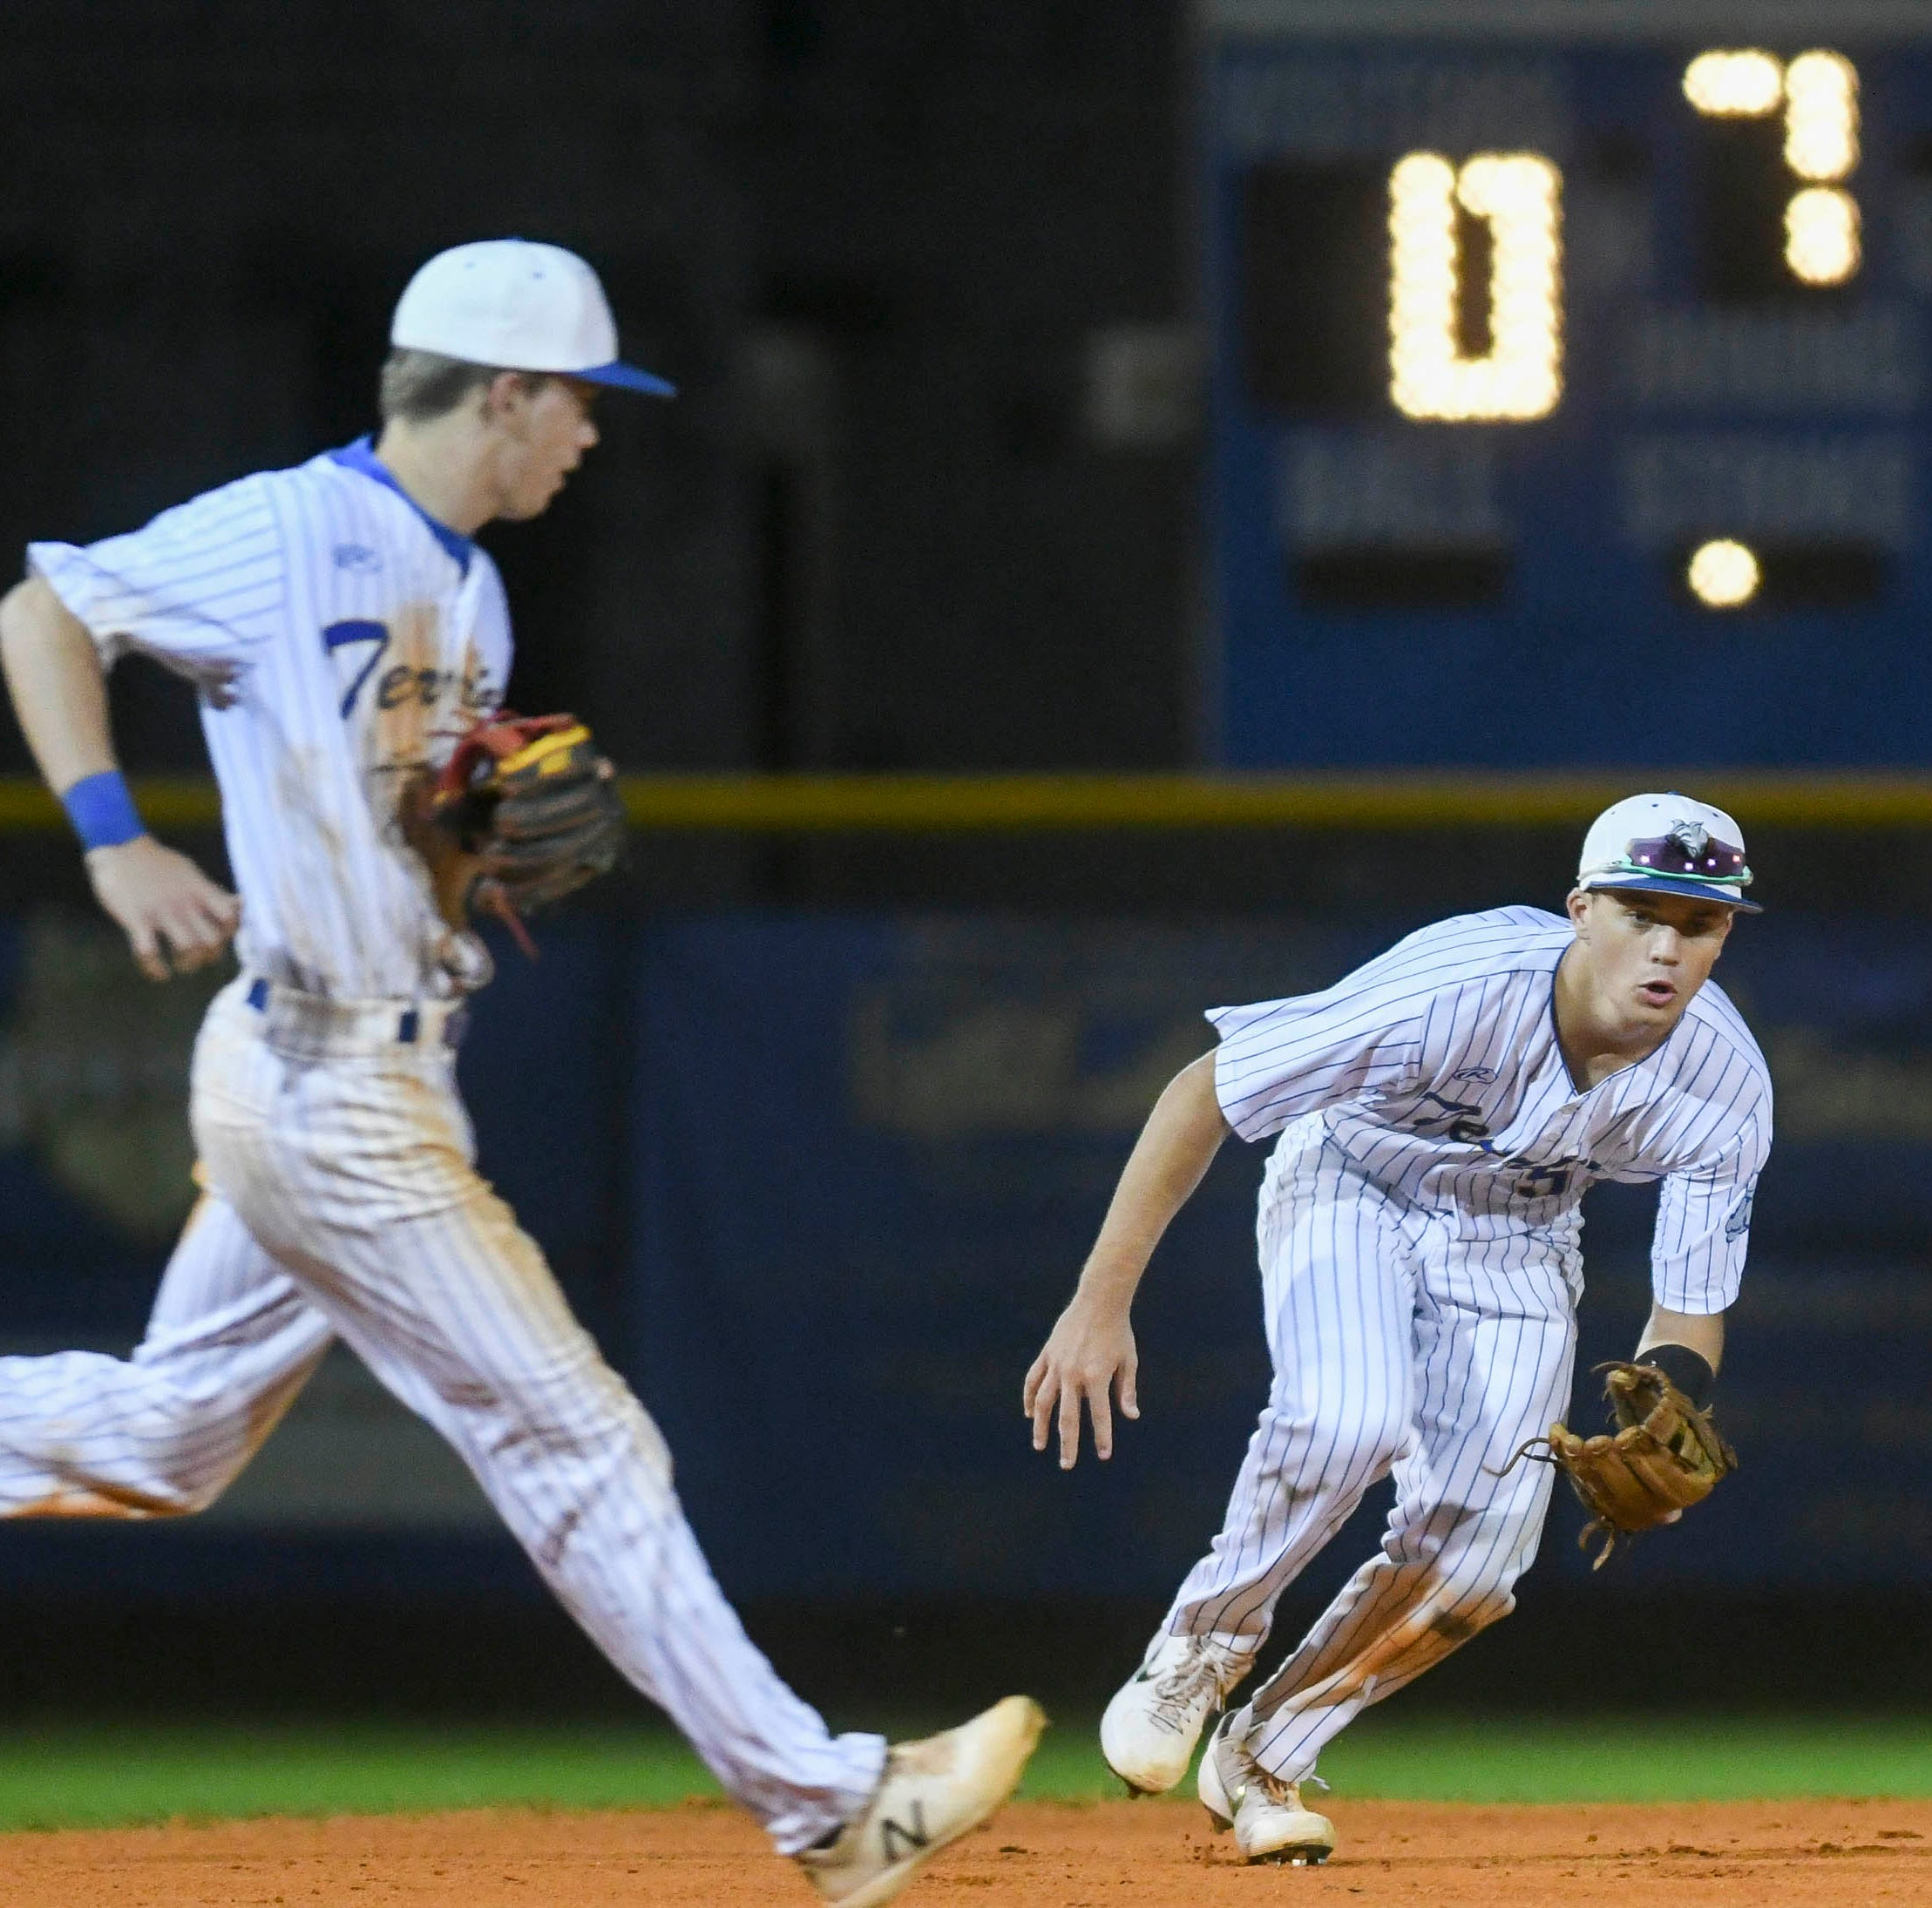 Titusville wins first district baseball title in 14 years